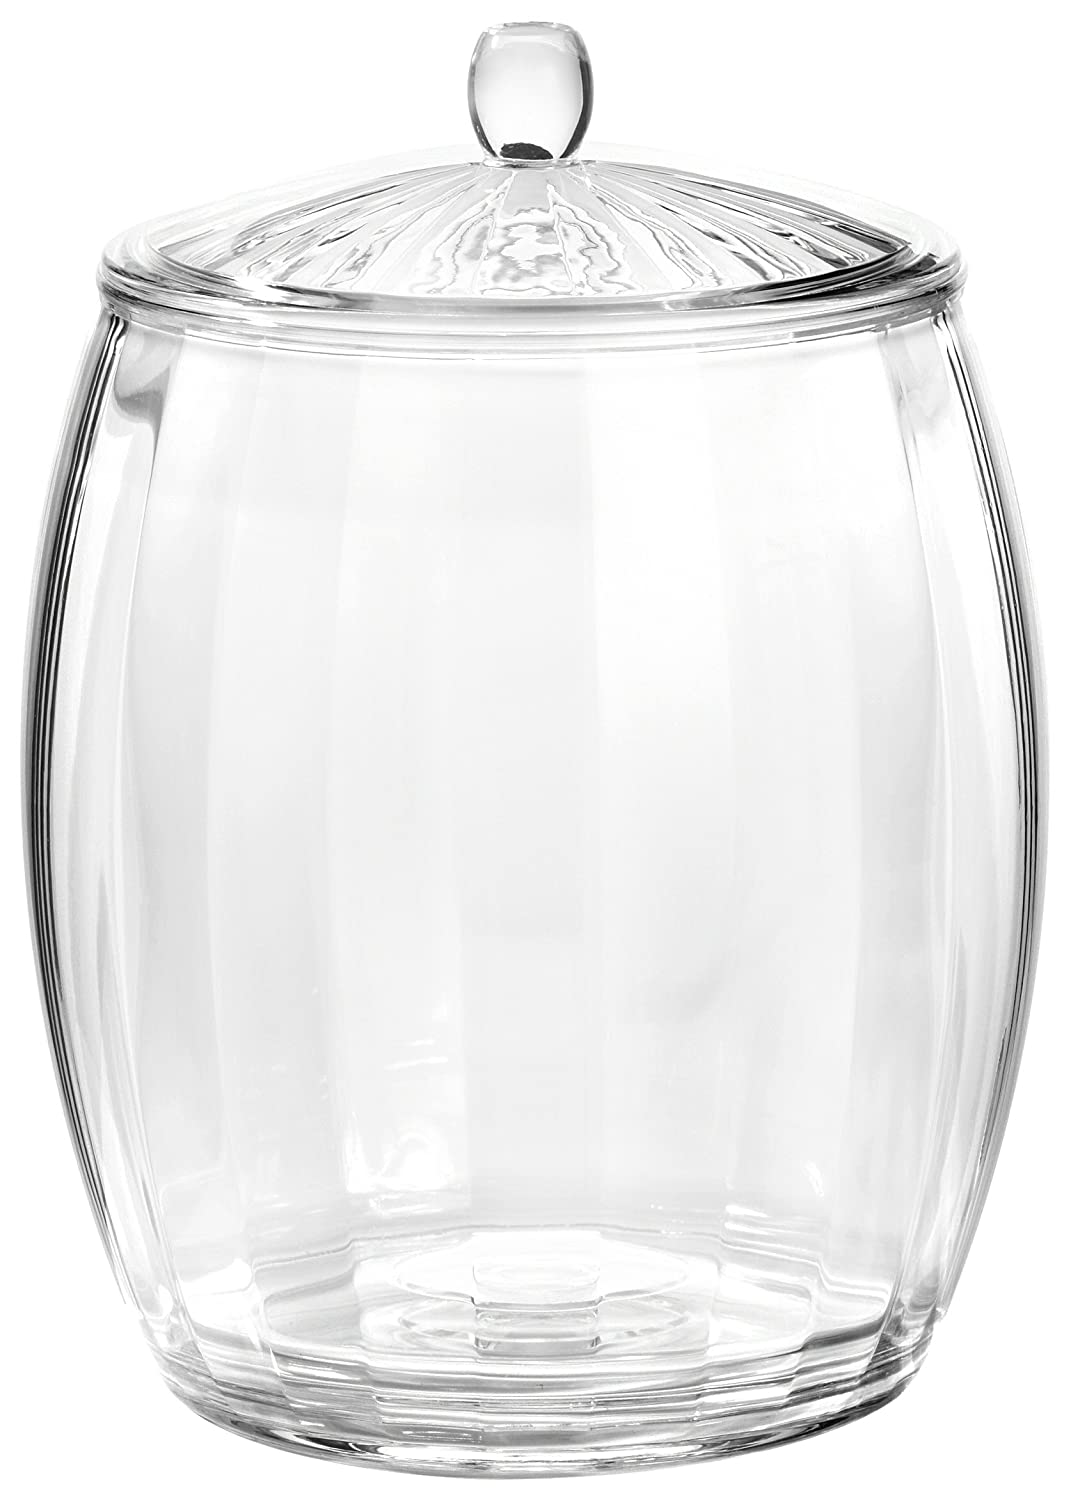 Prodyne AP-98 Contours 3-1/2-Quart Ice Bucket, Clear SS-PD-AP-98